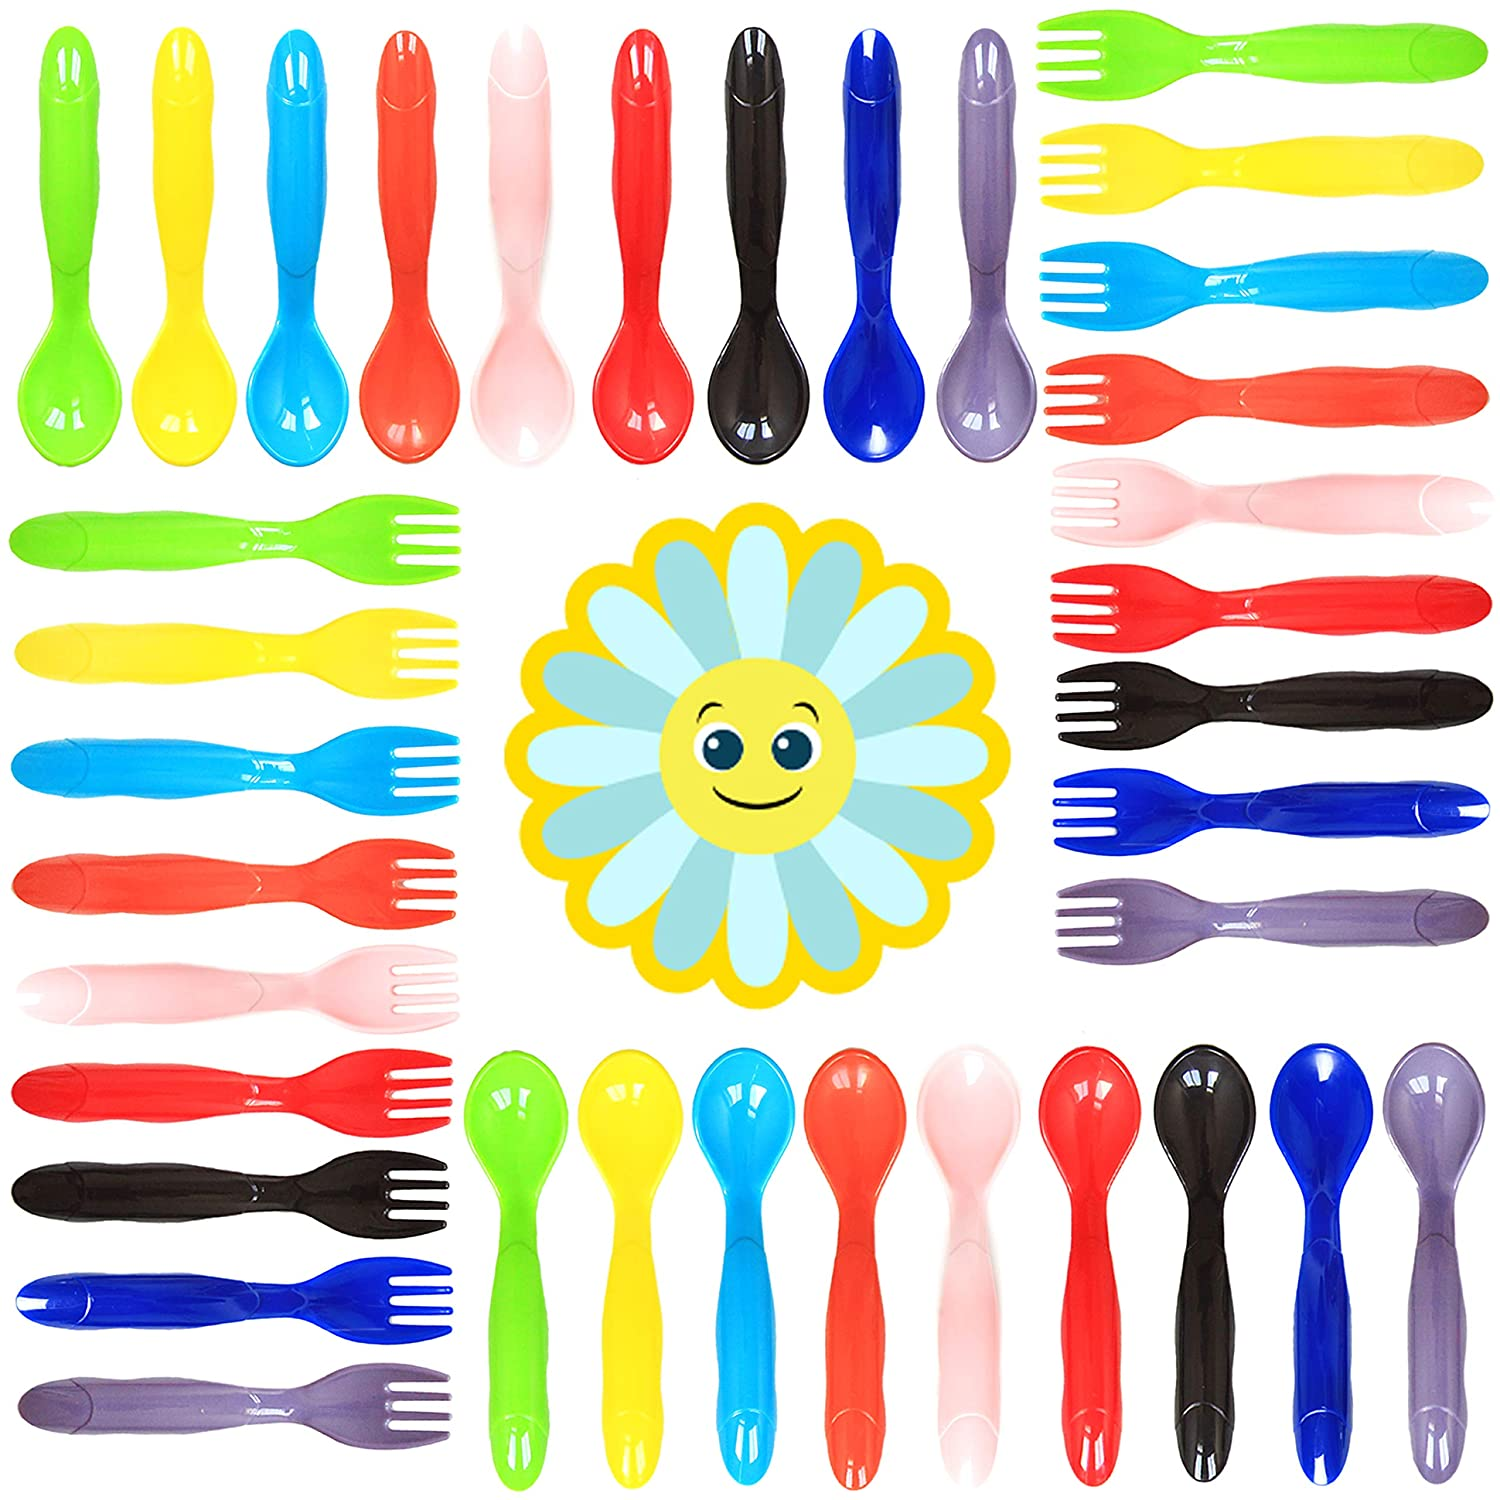 Youngever 18 Pcs Plastic Toddler Utensils, Set of 9 in 9 Assorted Colors, Plastic Kids Forks Kids Spoons, Dishwasher Safe, Toddler Silverware, Kids Plastic Cutlery Set, 9 Assorted Colors